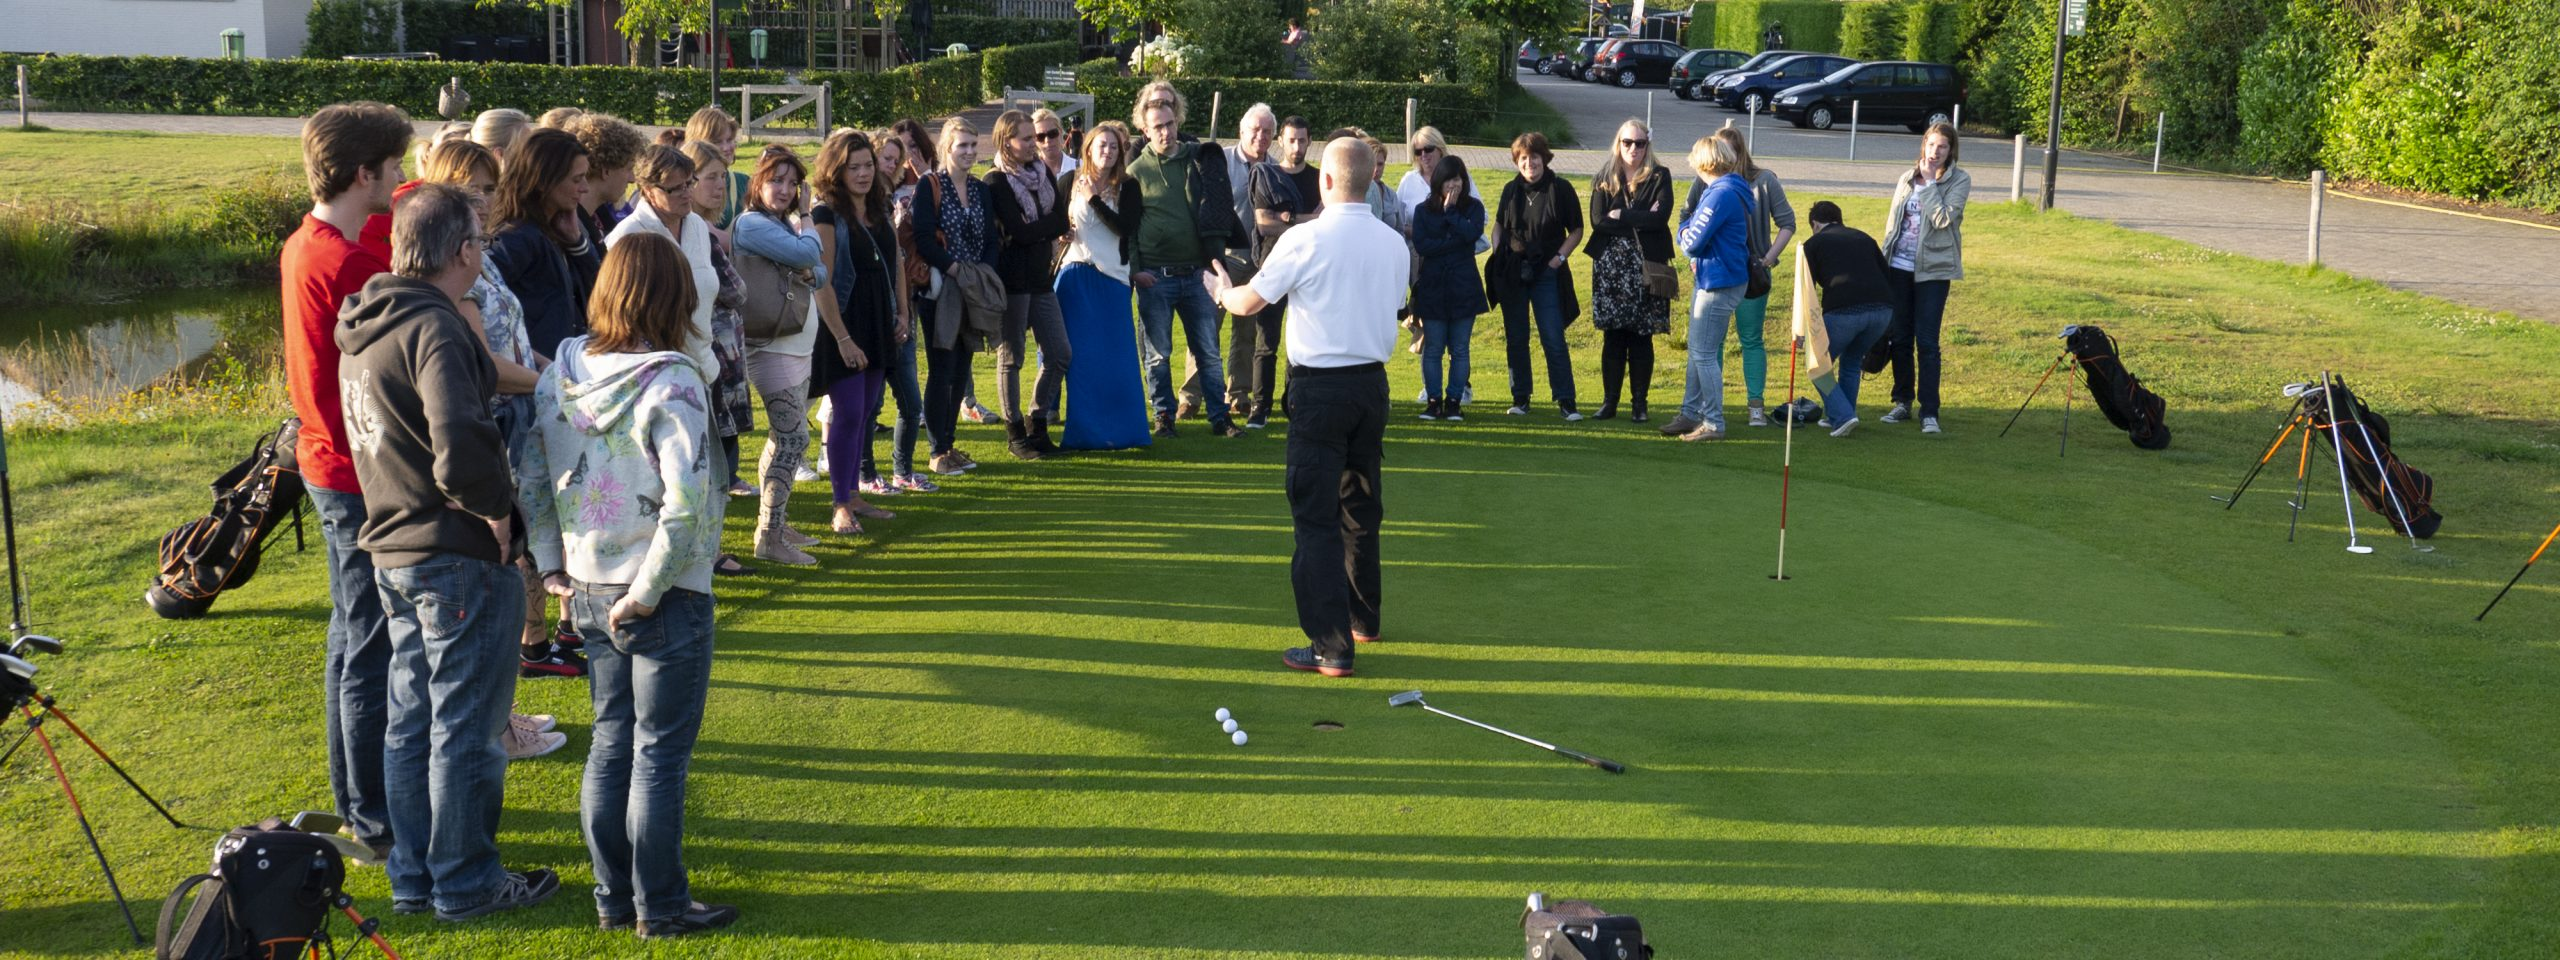 teambuilding-eindhoven-big-golf-event